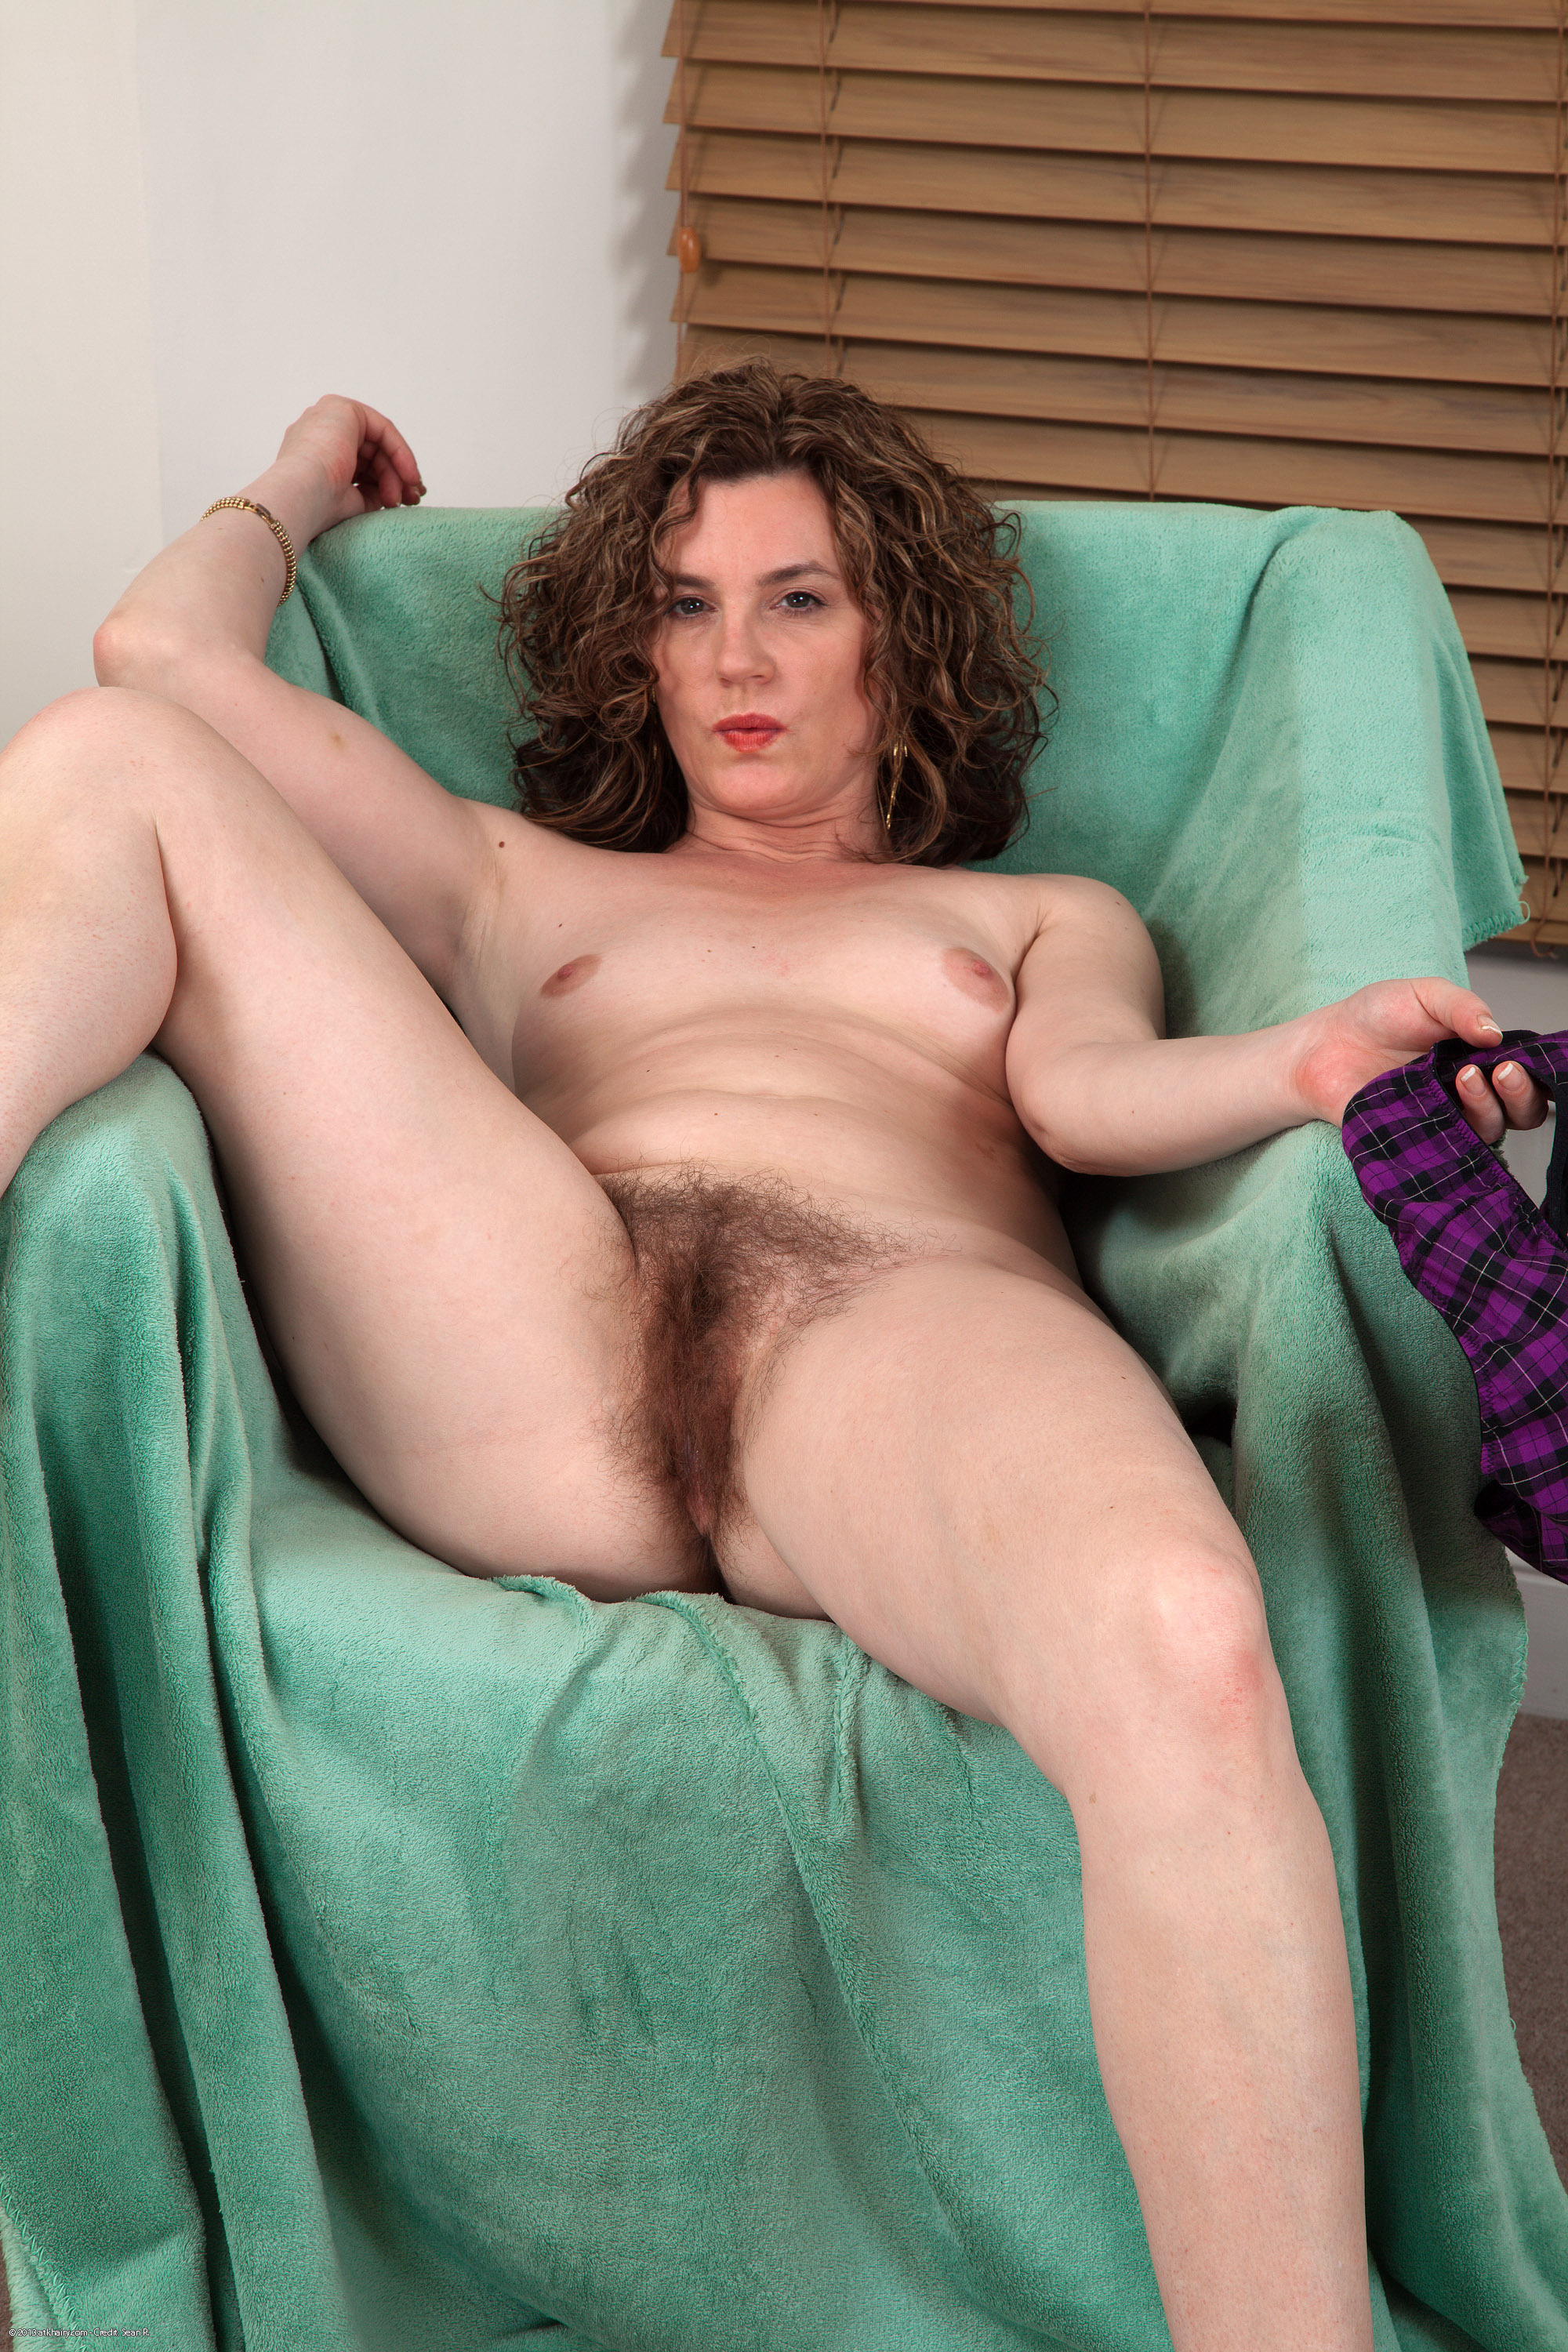 Pussy of best hairy pussy